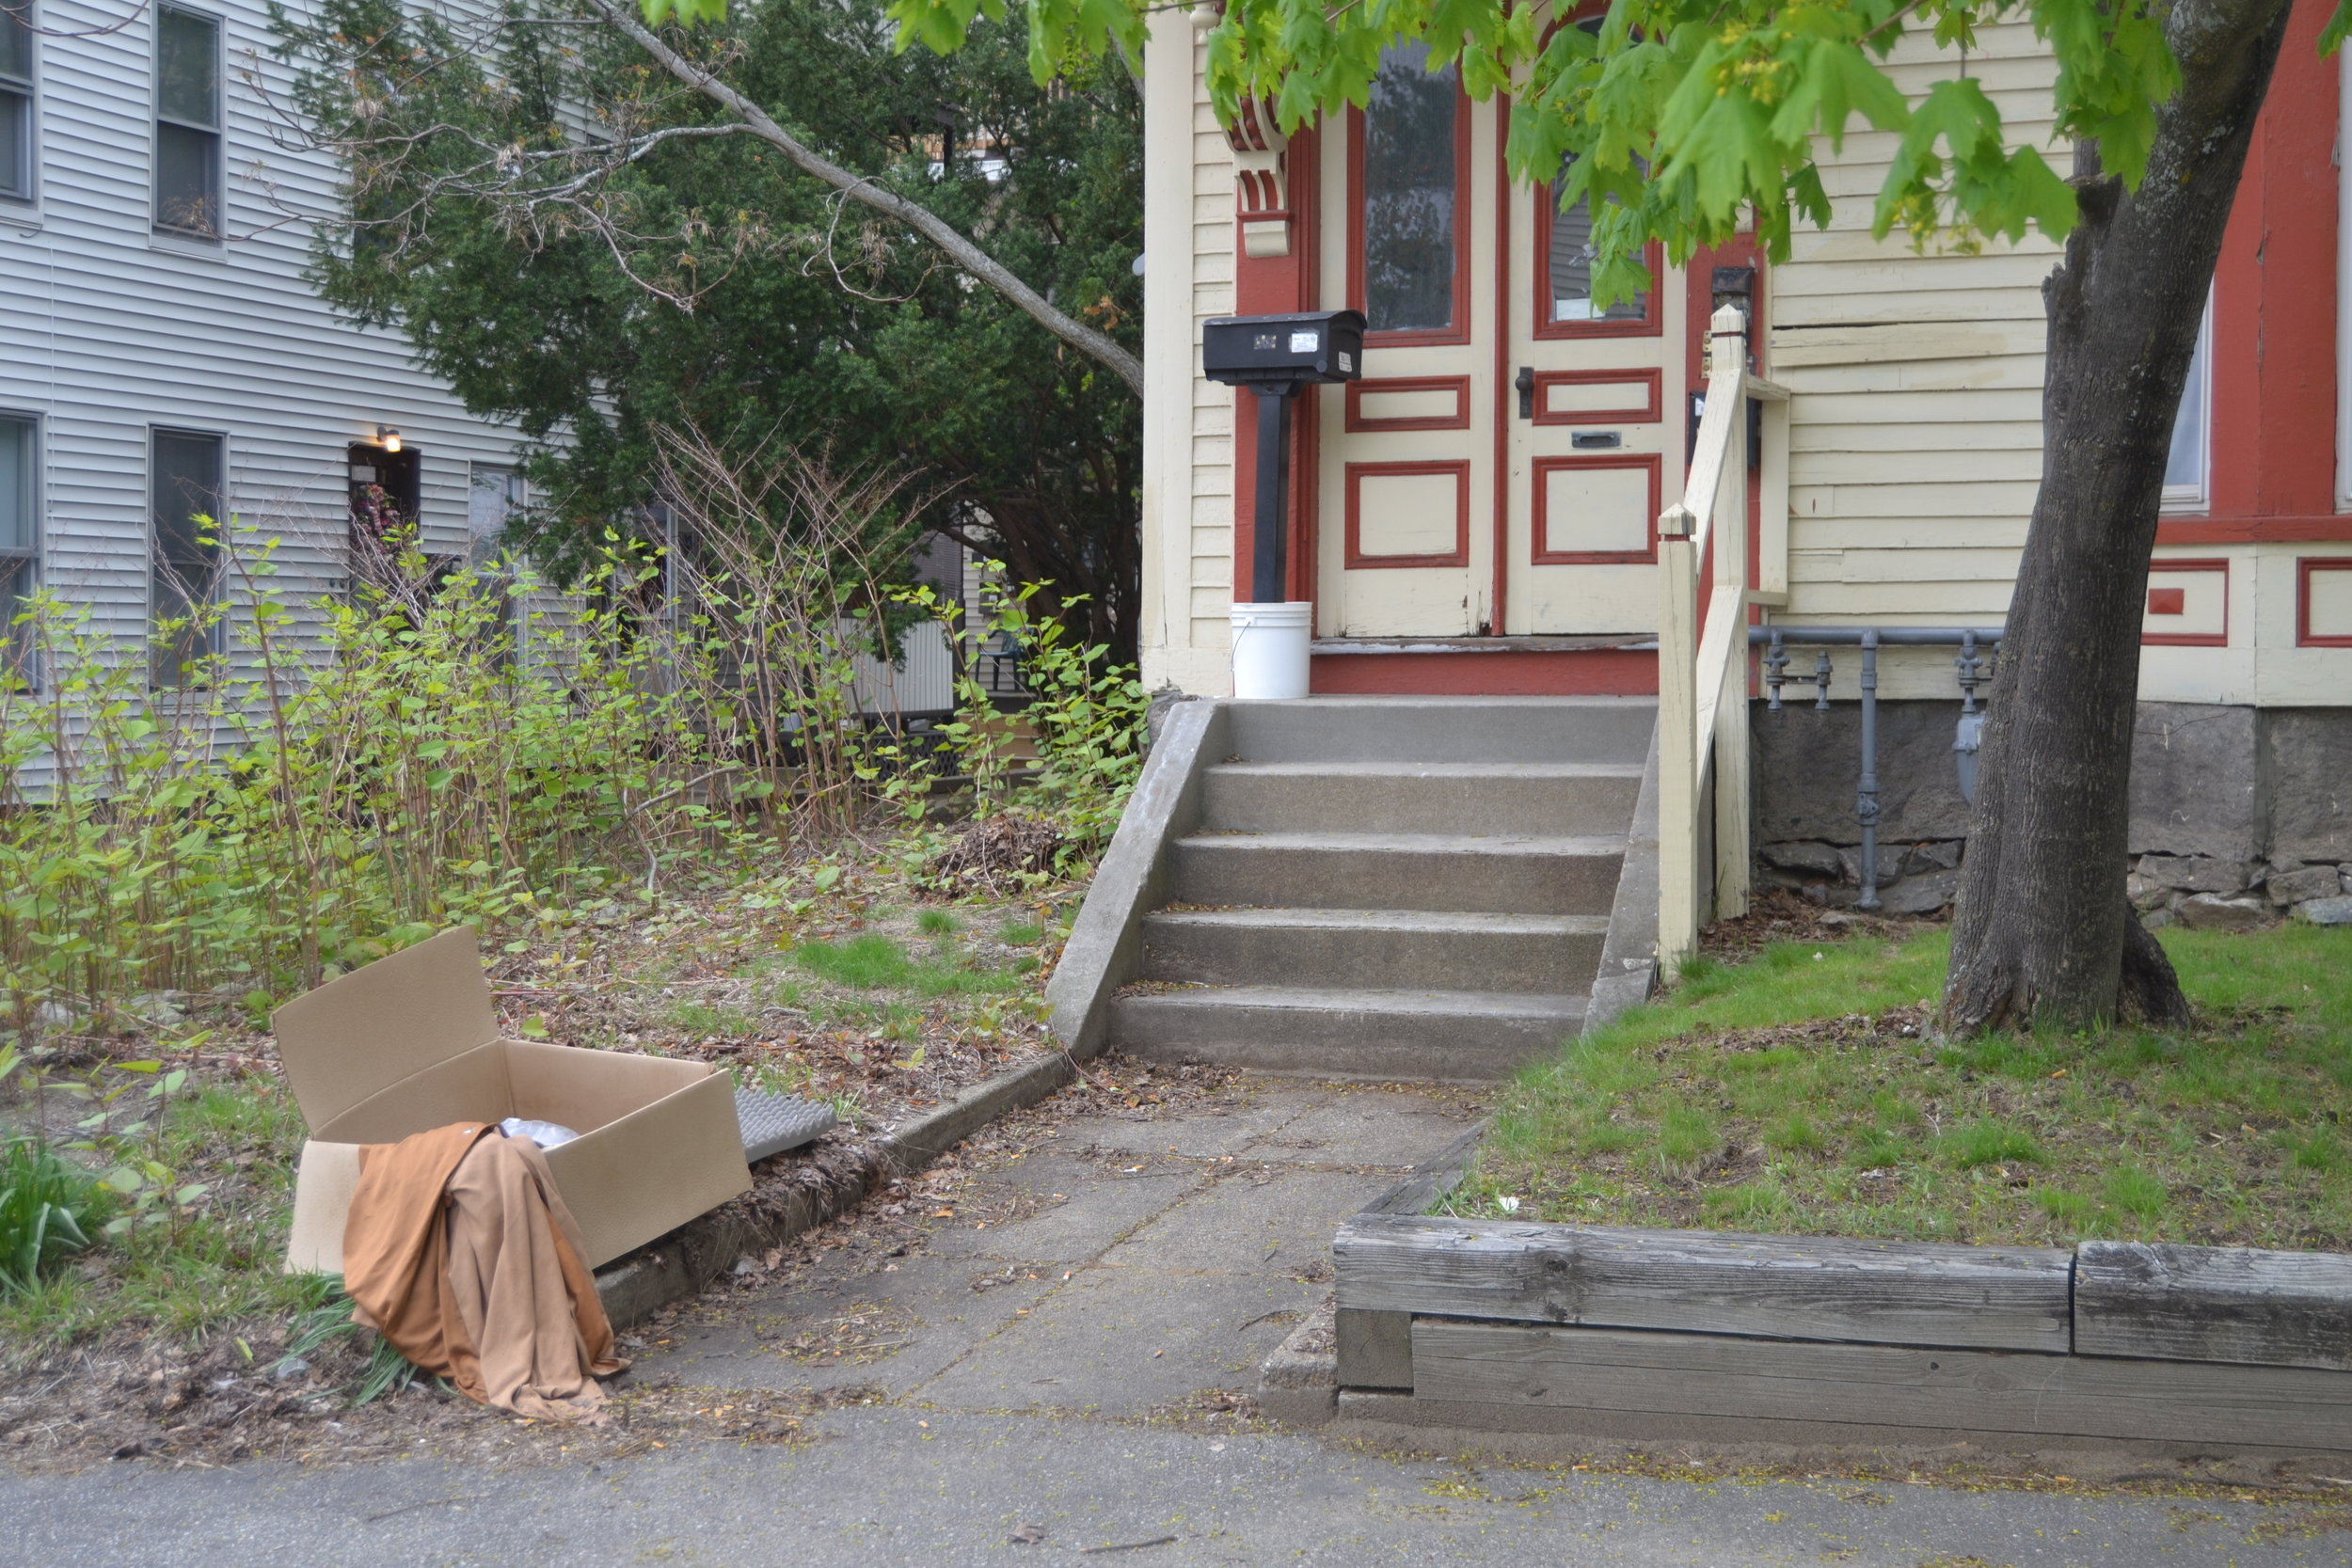 A view from the sidewalk of a house the city suspects is operating as a 'recovery house.'   CREDIT PAIGE SUTHERLAND/NHPR